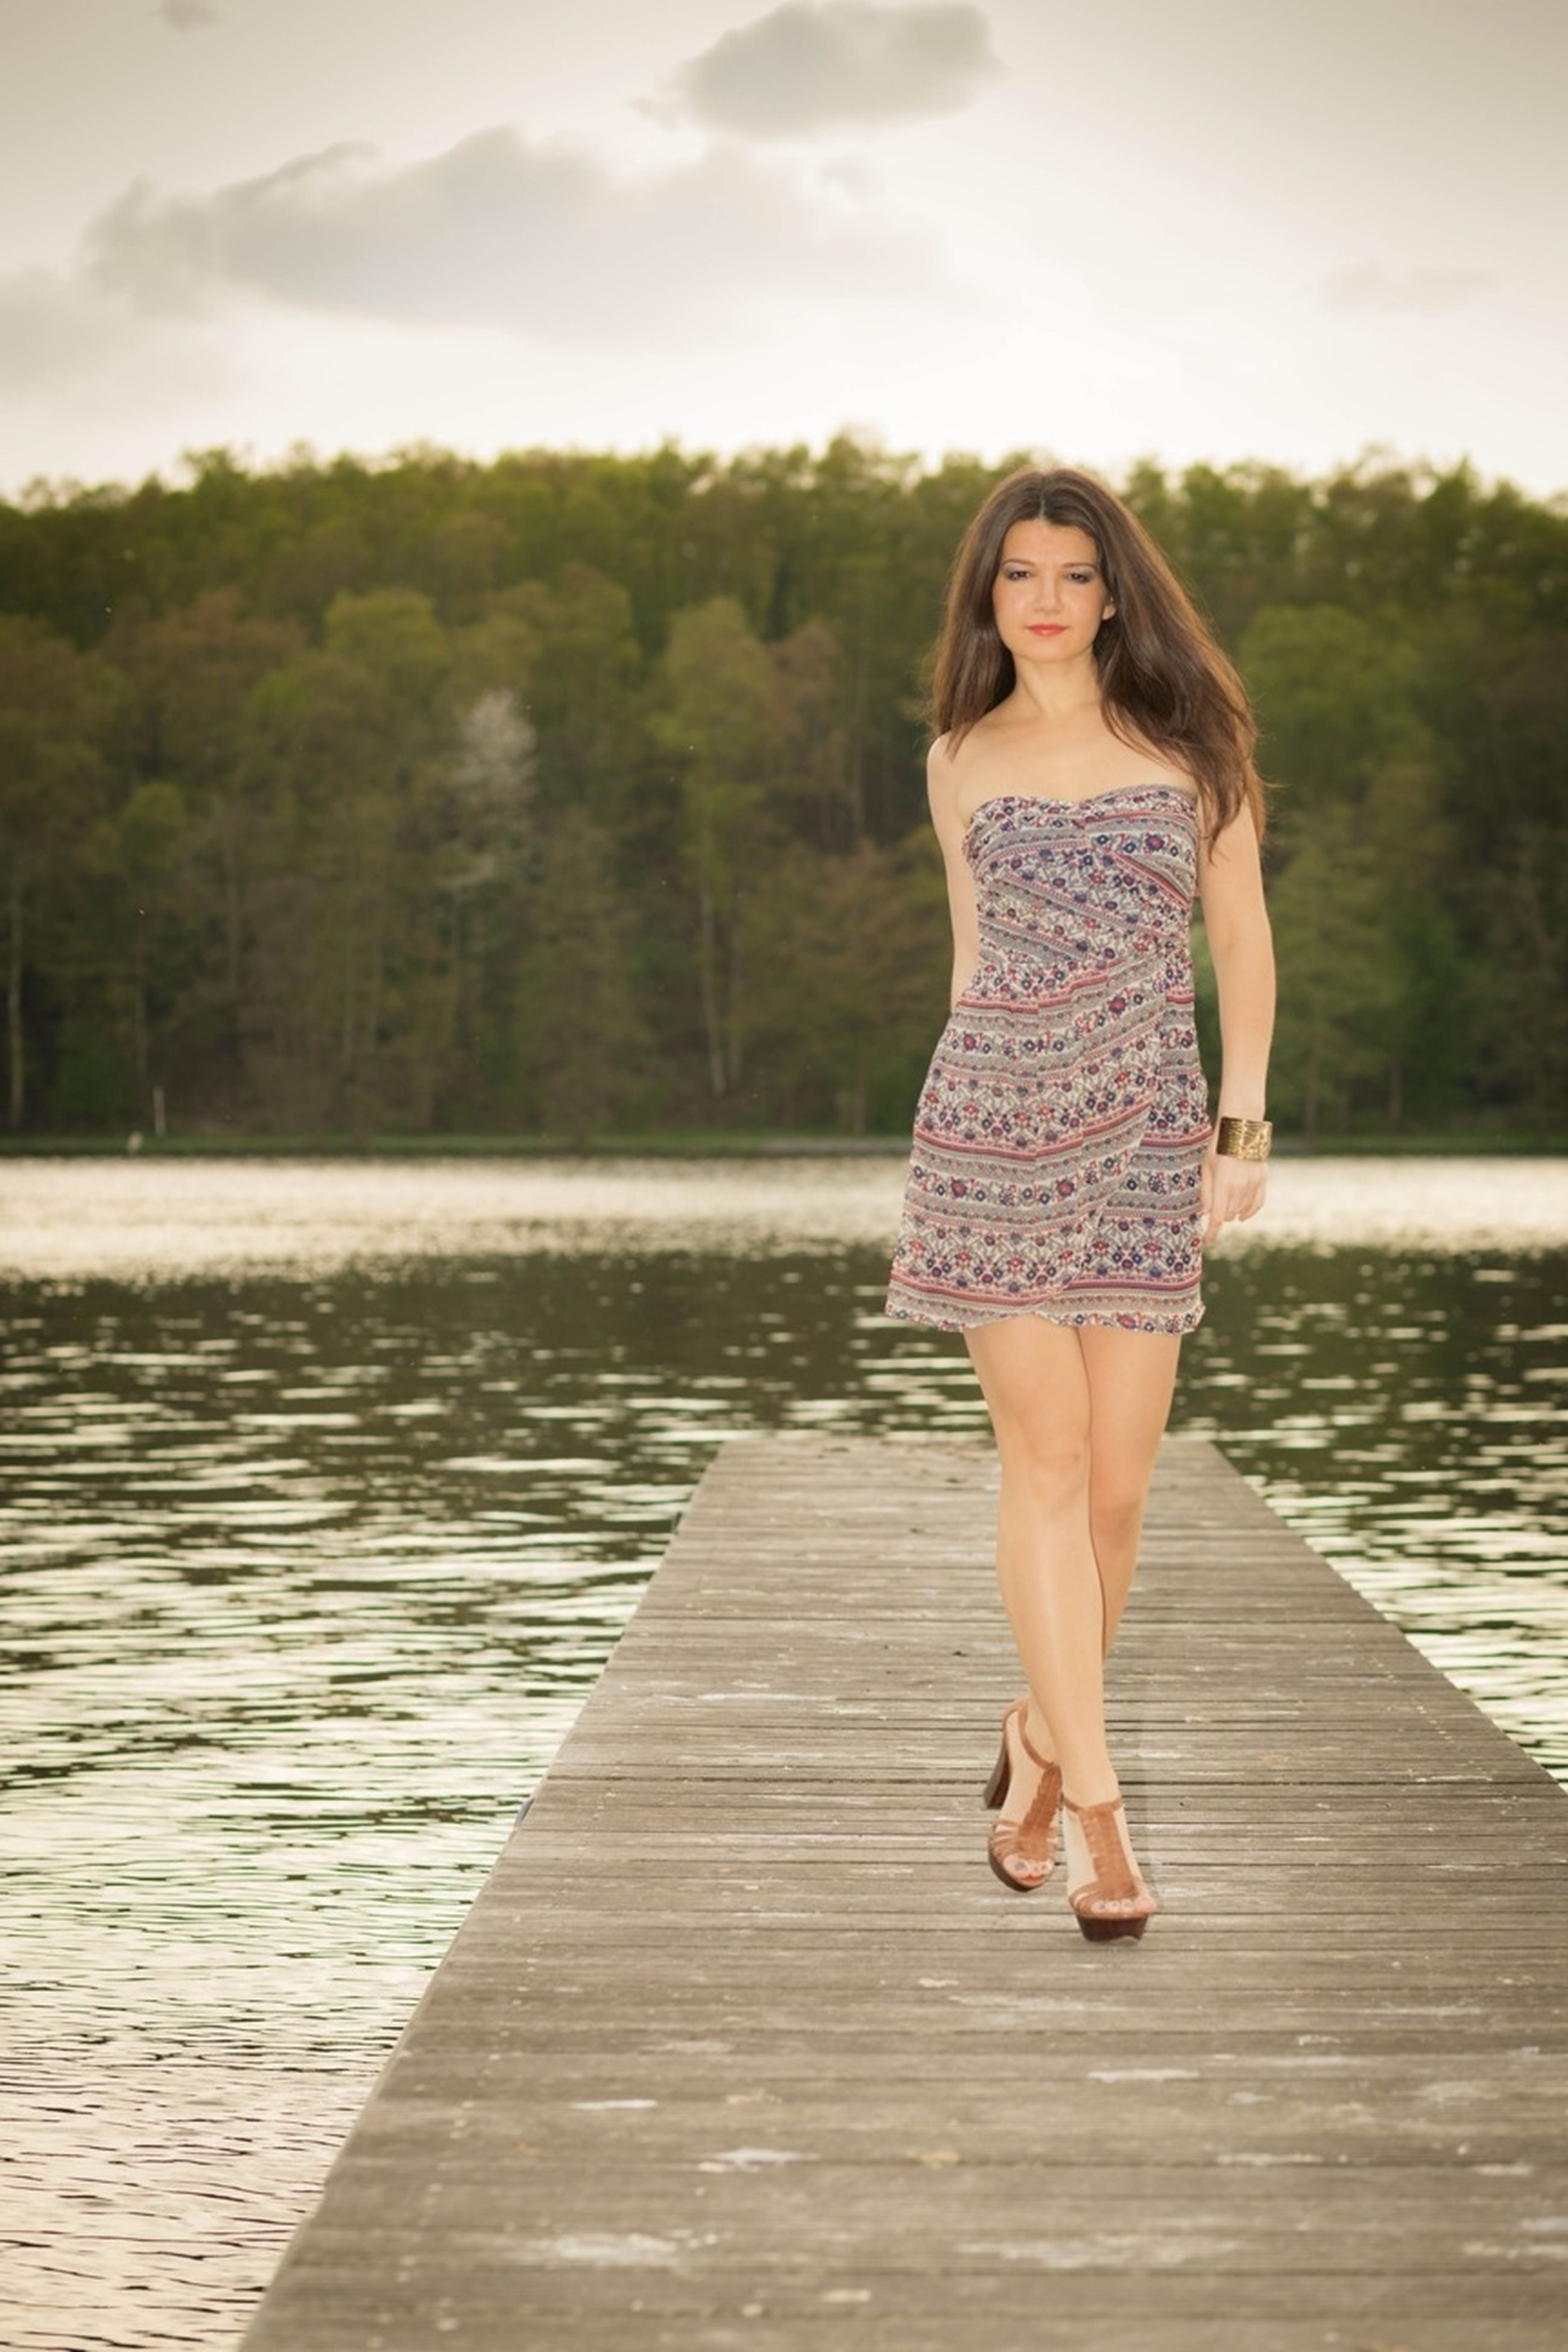 young adult, full length, lifestyles, casual clothing, person, standing, leisure activity, young women, tree, water, sky, front view, outdoors, day, sunlight, portrait, looking at camera